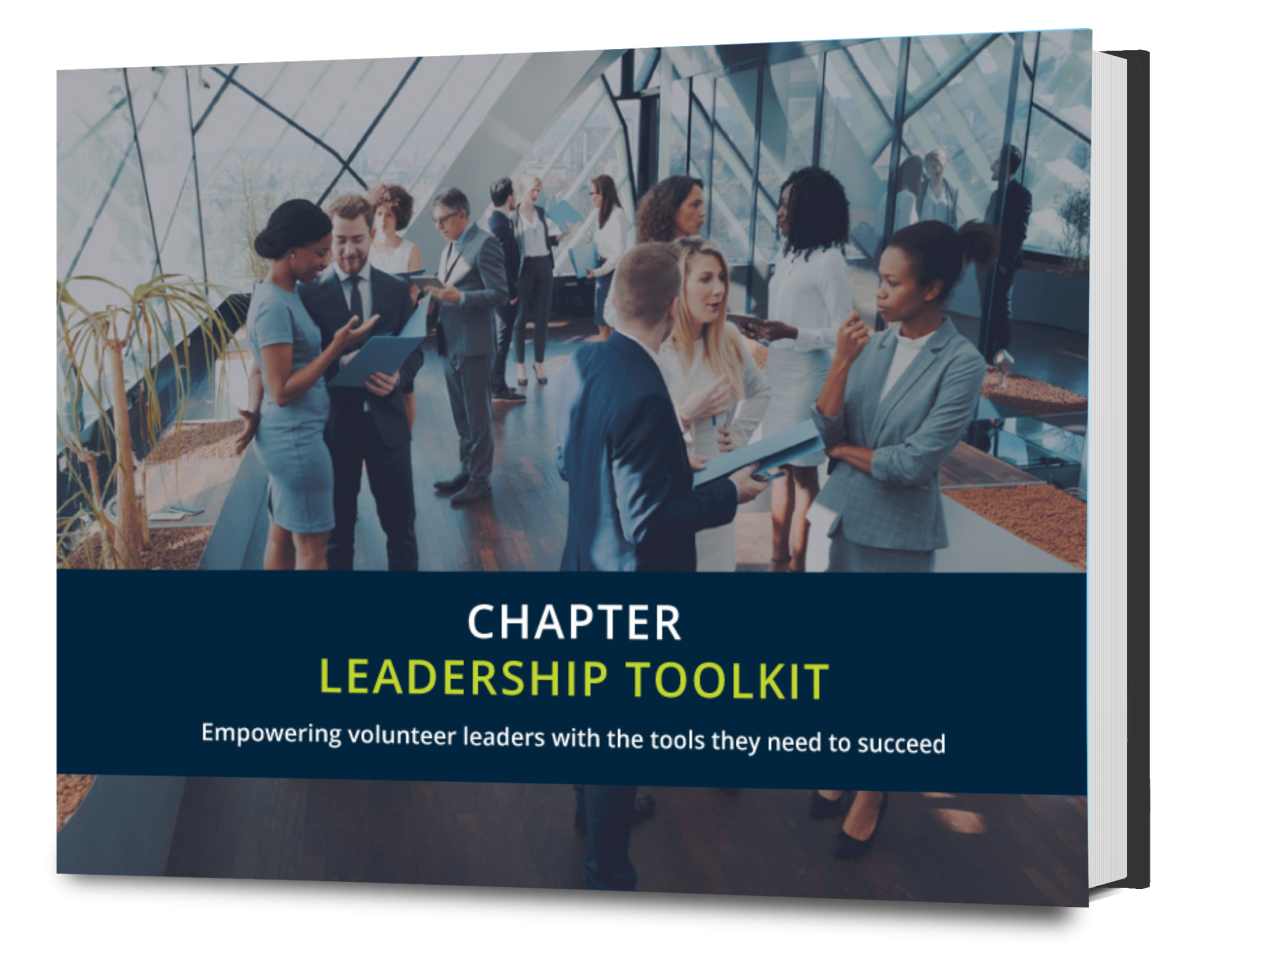 Chapter Leadership Toolkit